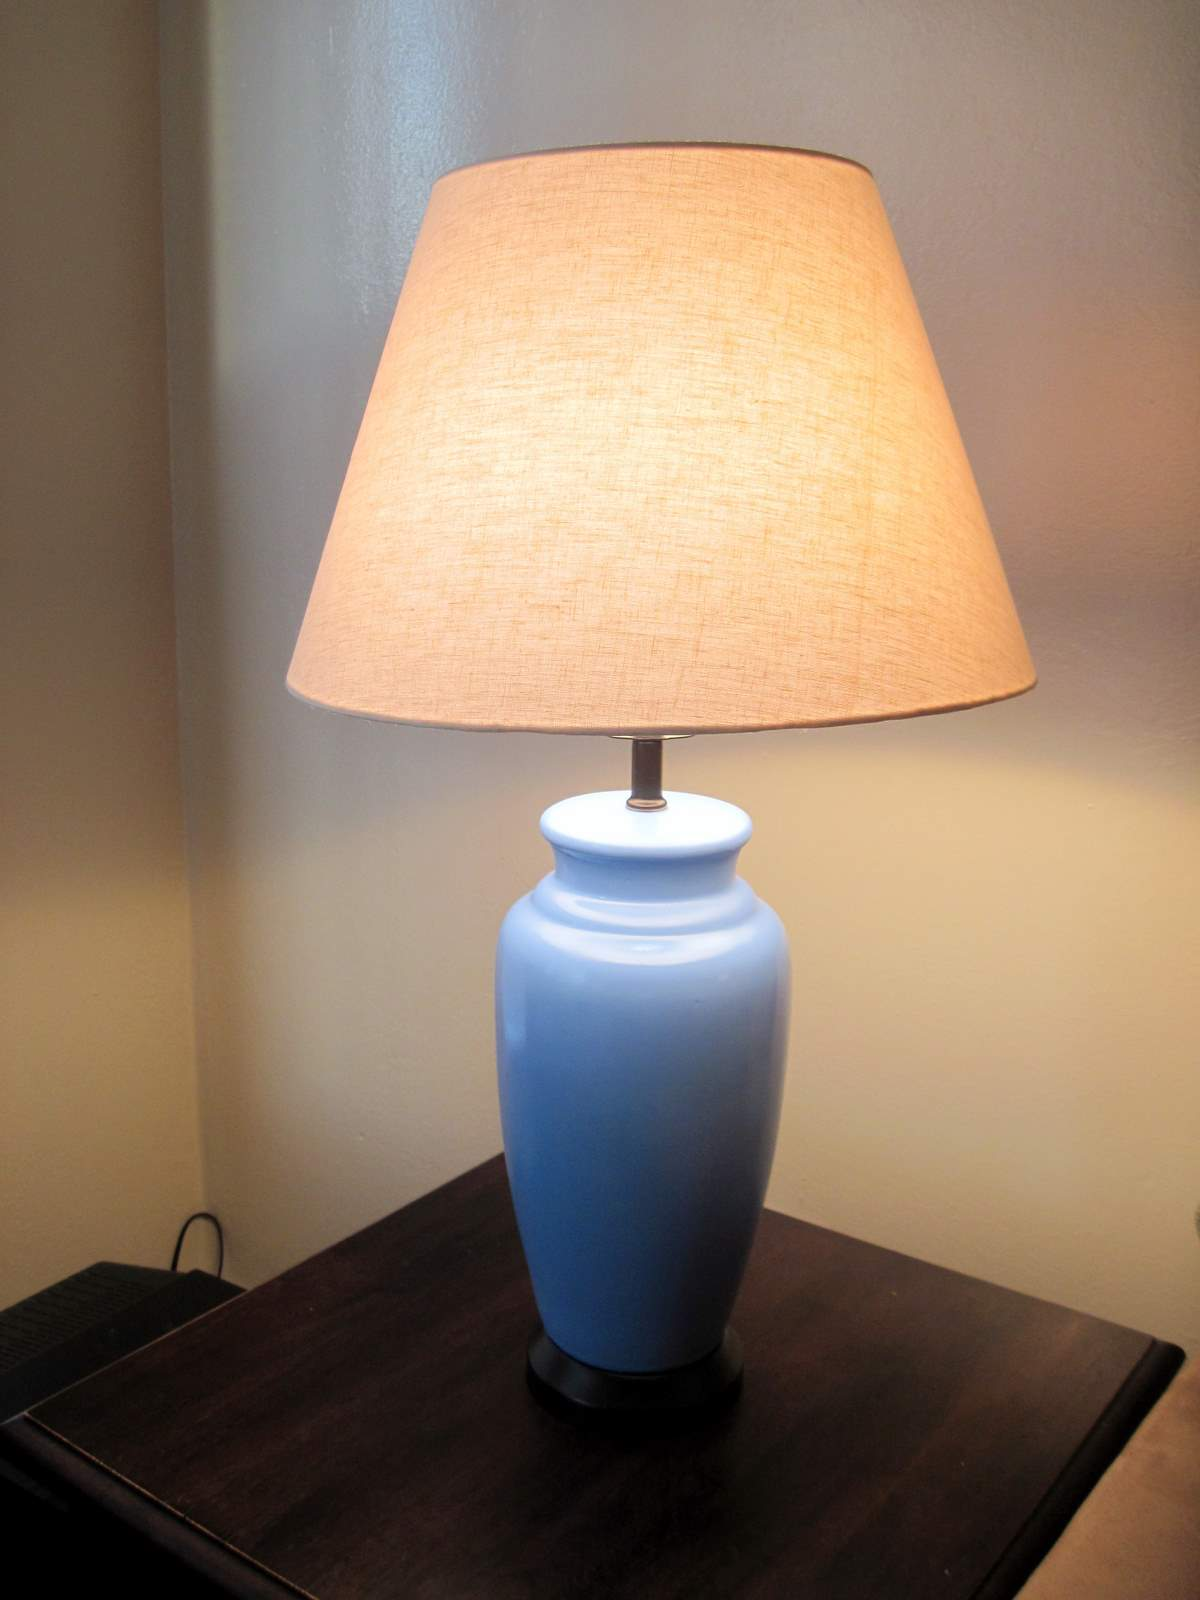 Living Room Lamp Project | Almost Never Clever